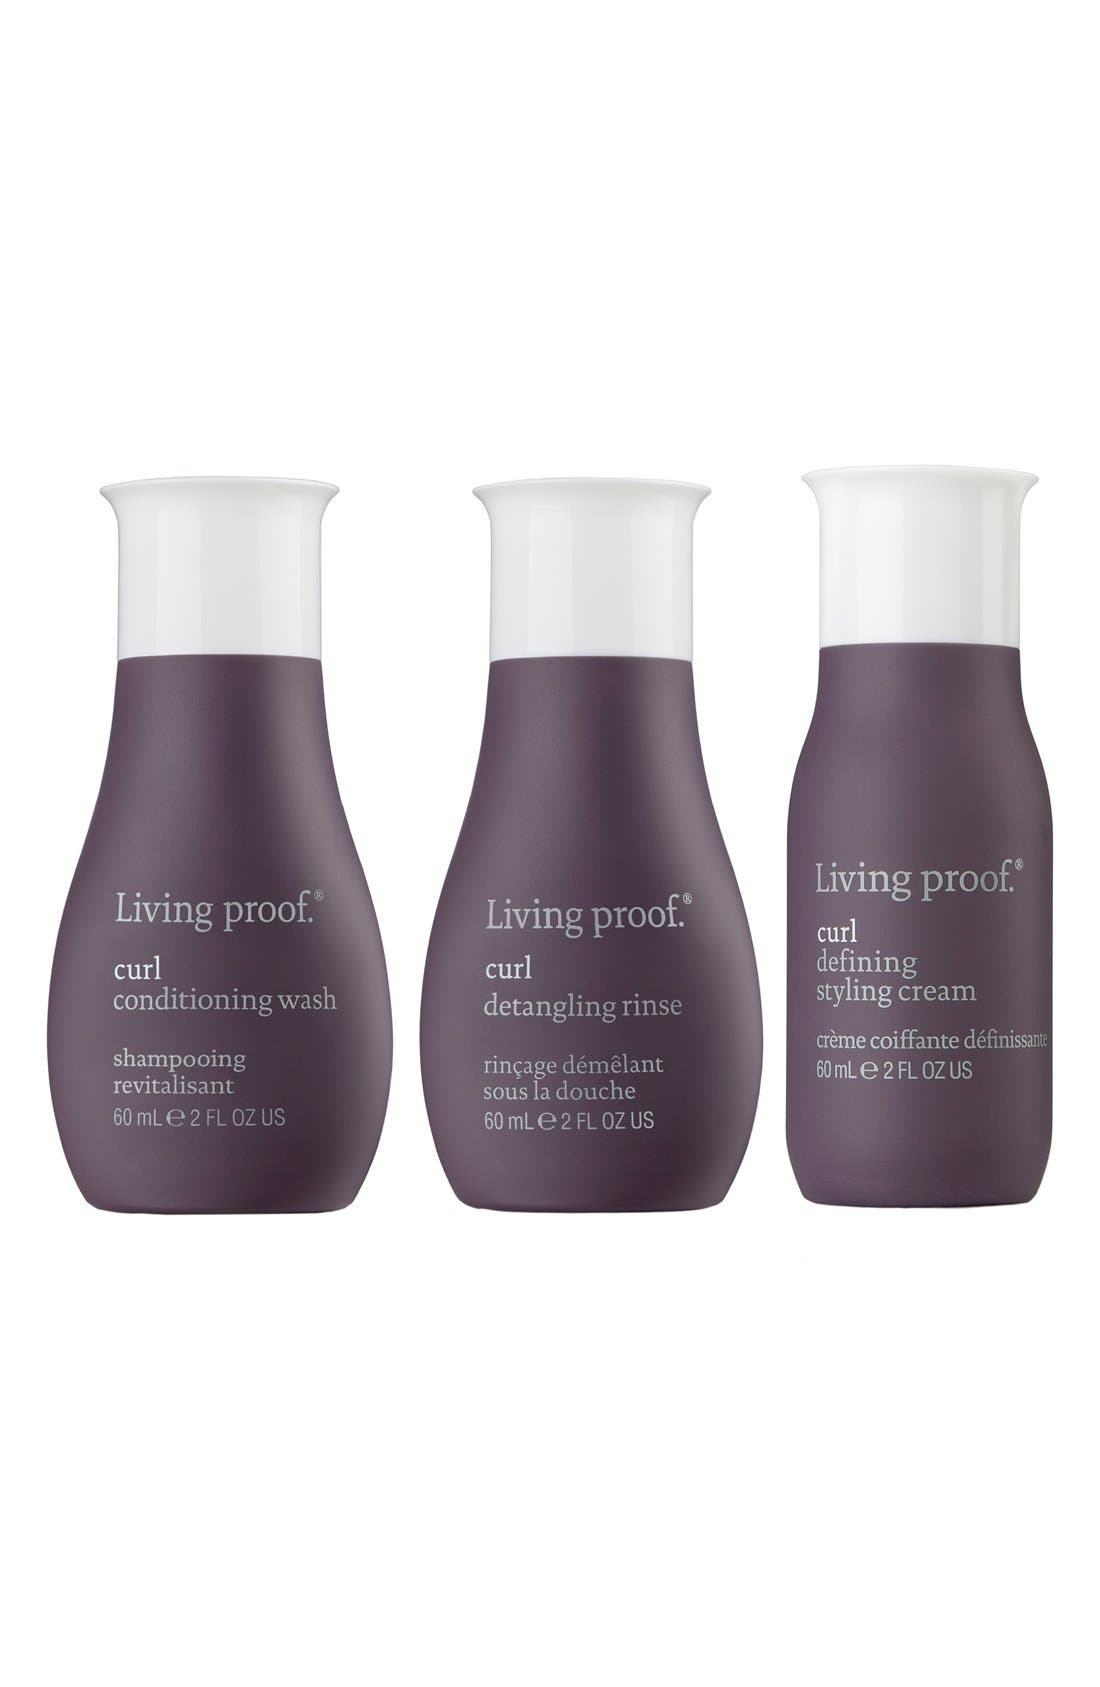 Living proof® Curl Travel Kit